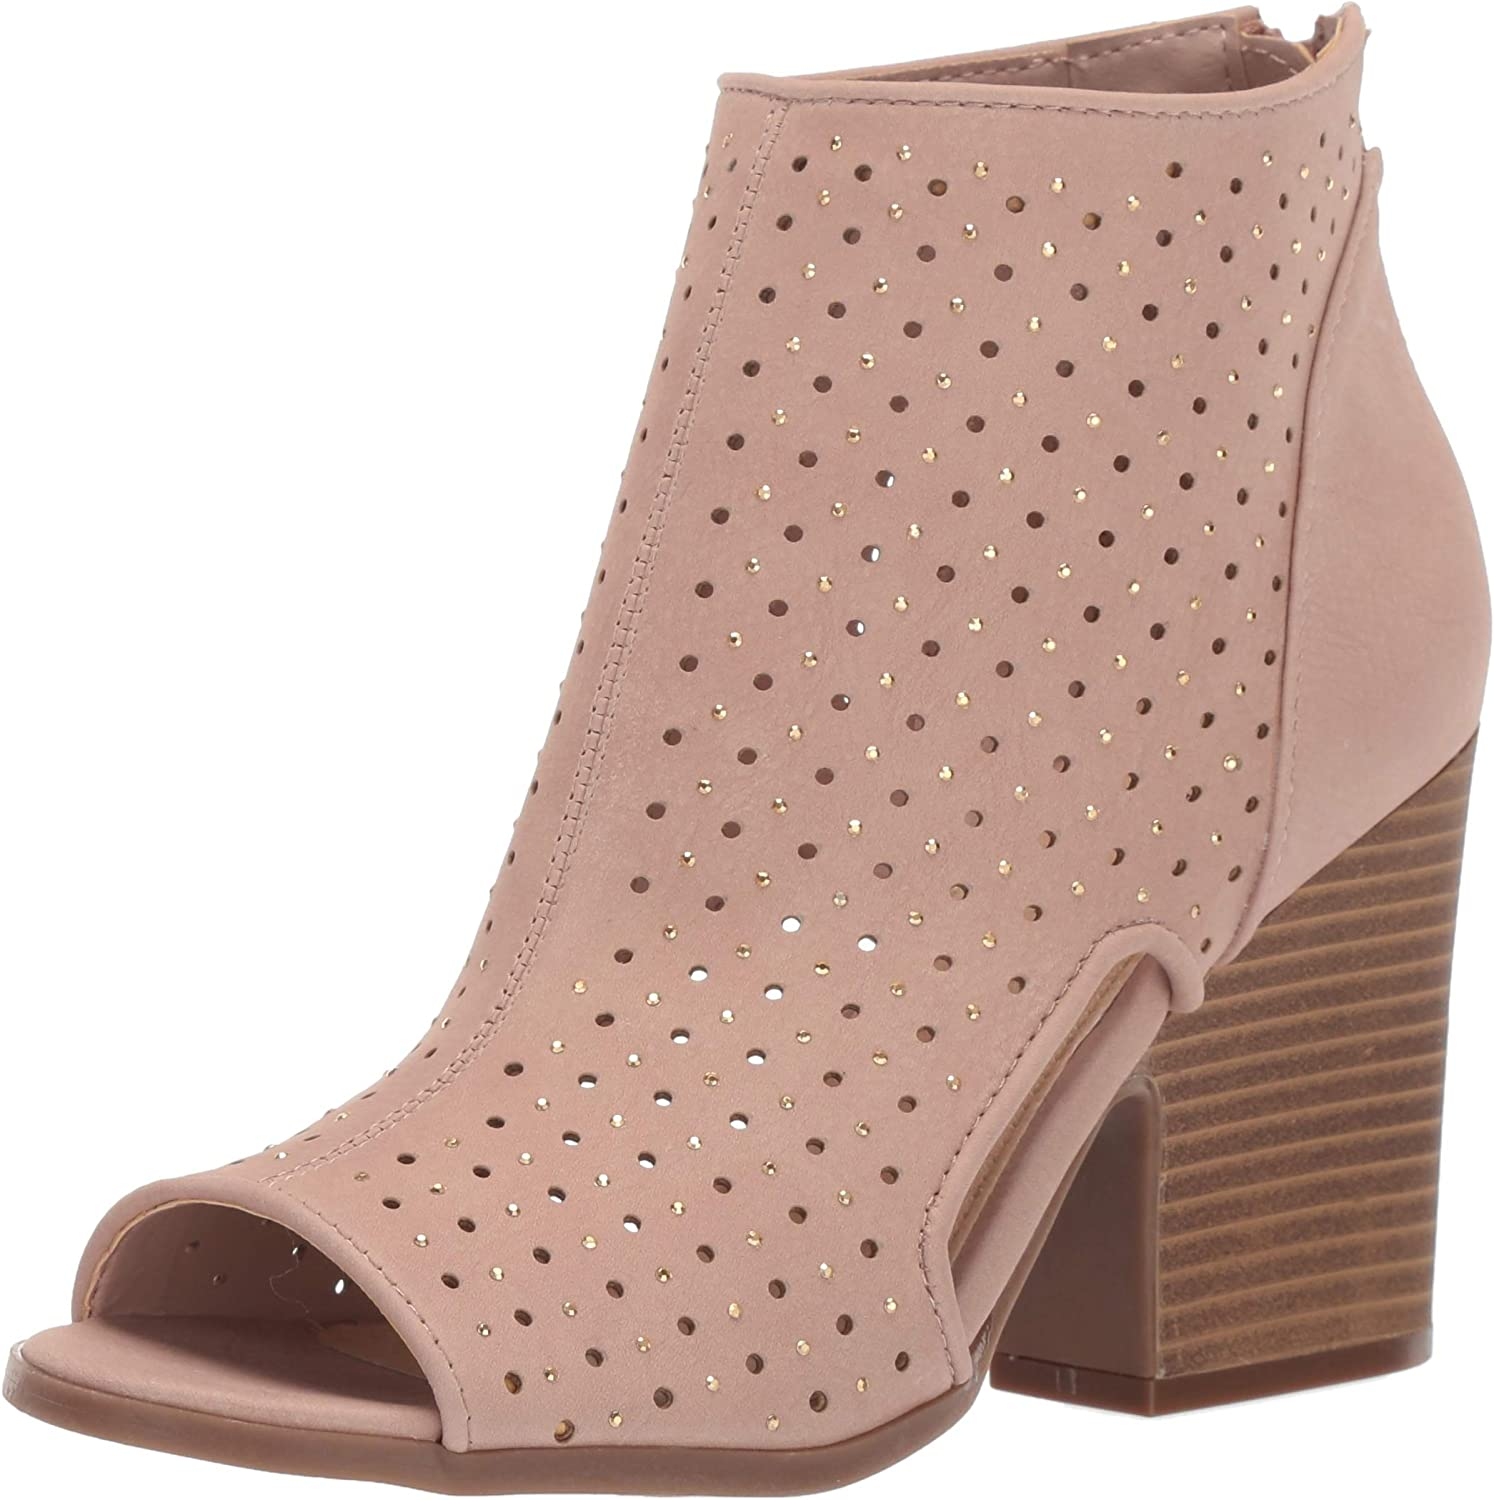 Rampage Womens Vionna Perforated Side Cutout Peep Toe Block Heel Ankle Bootie Ankle Boot